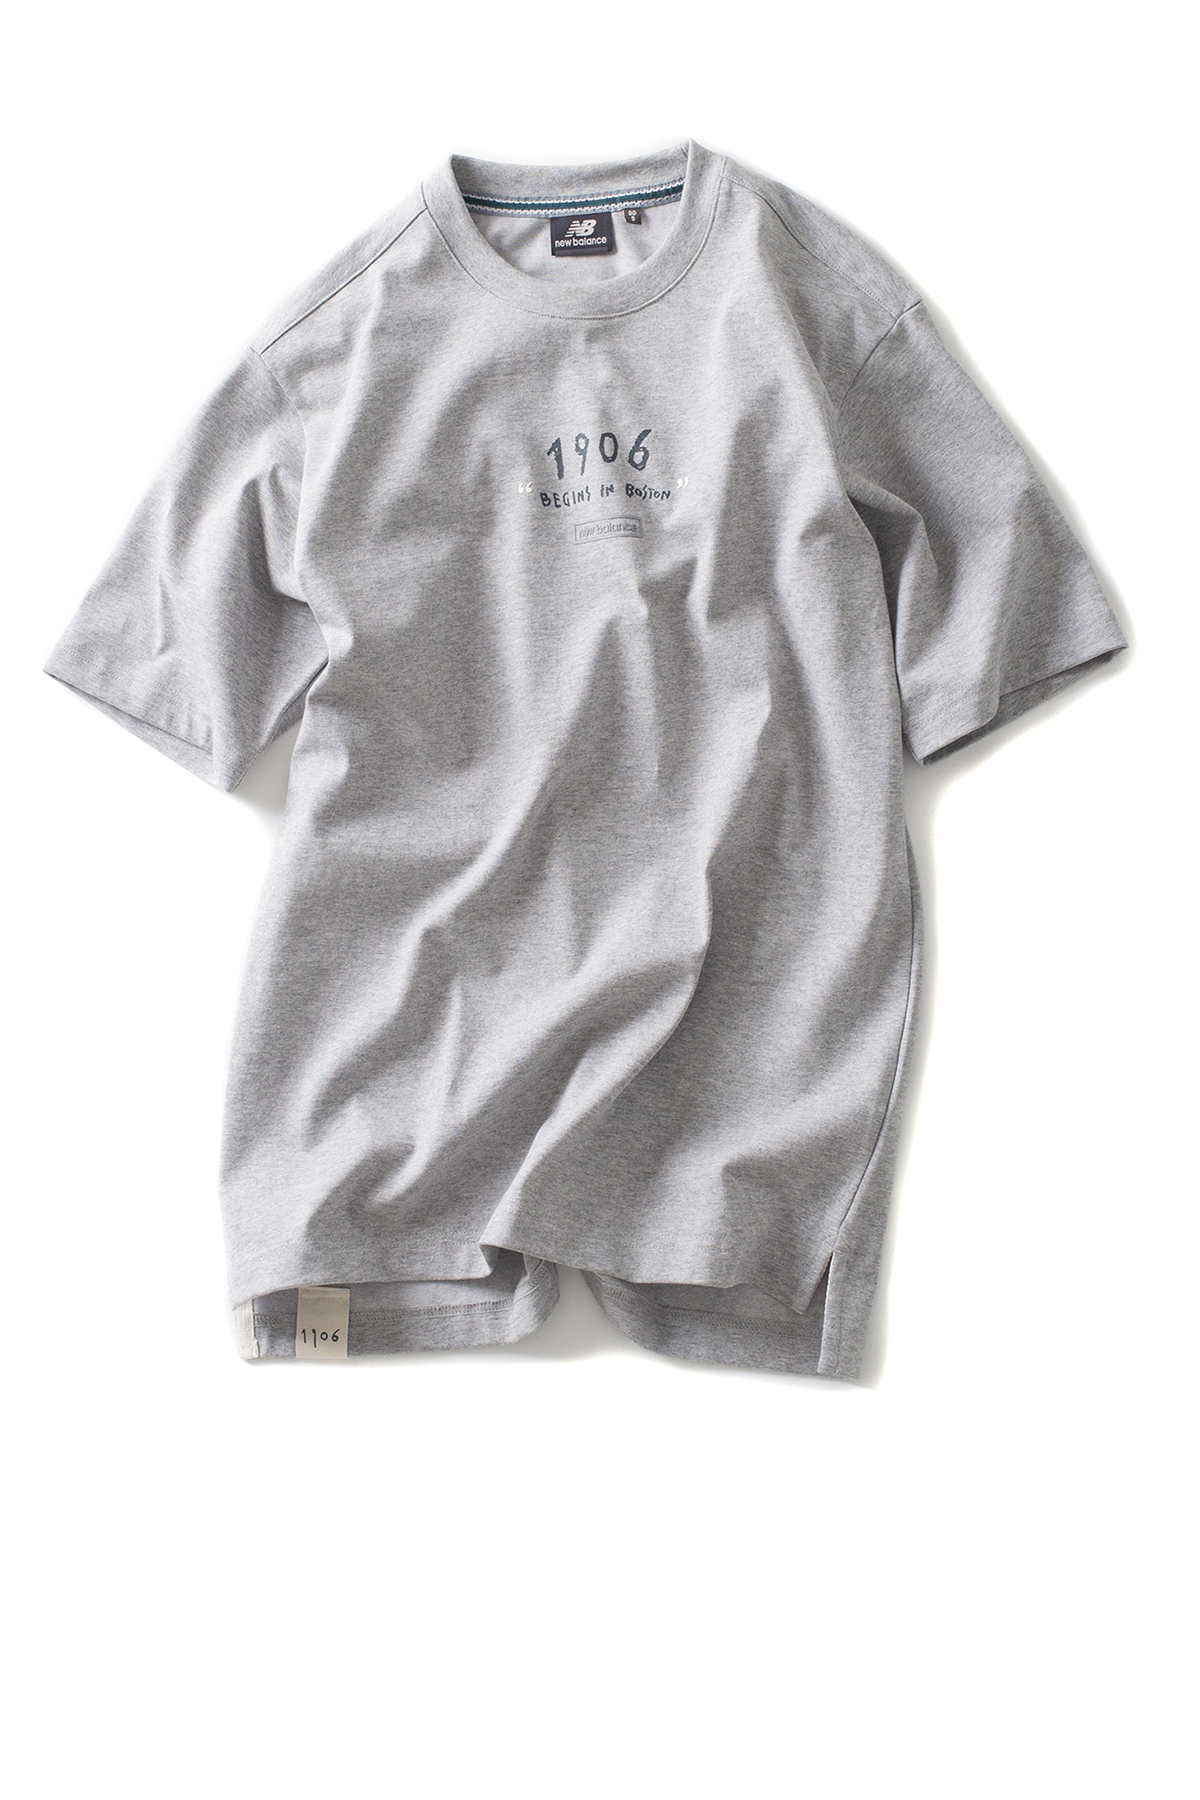 New Balance : UNI Drawing Pack Marathone Winner Tee (Grey)